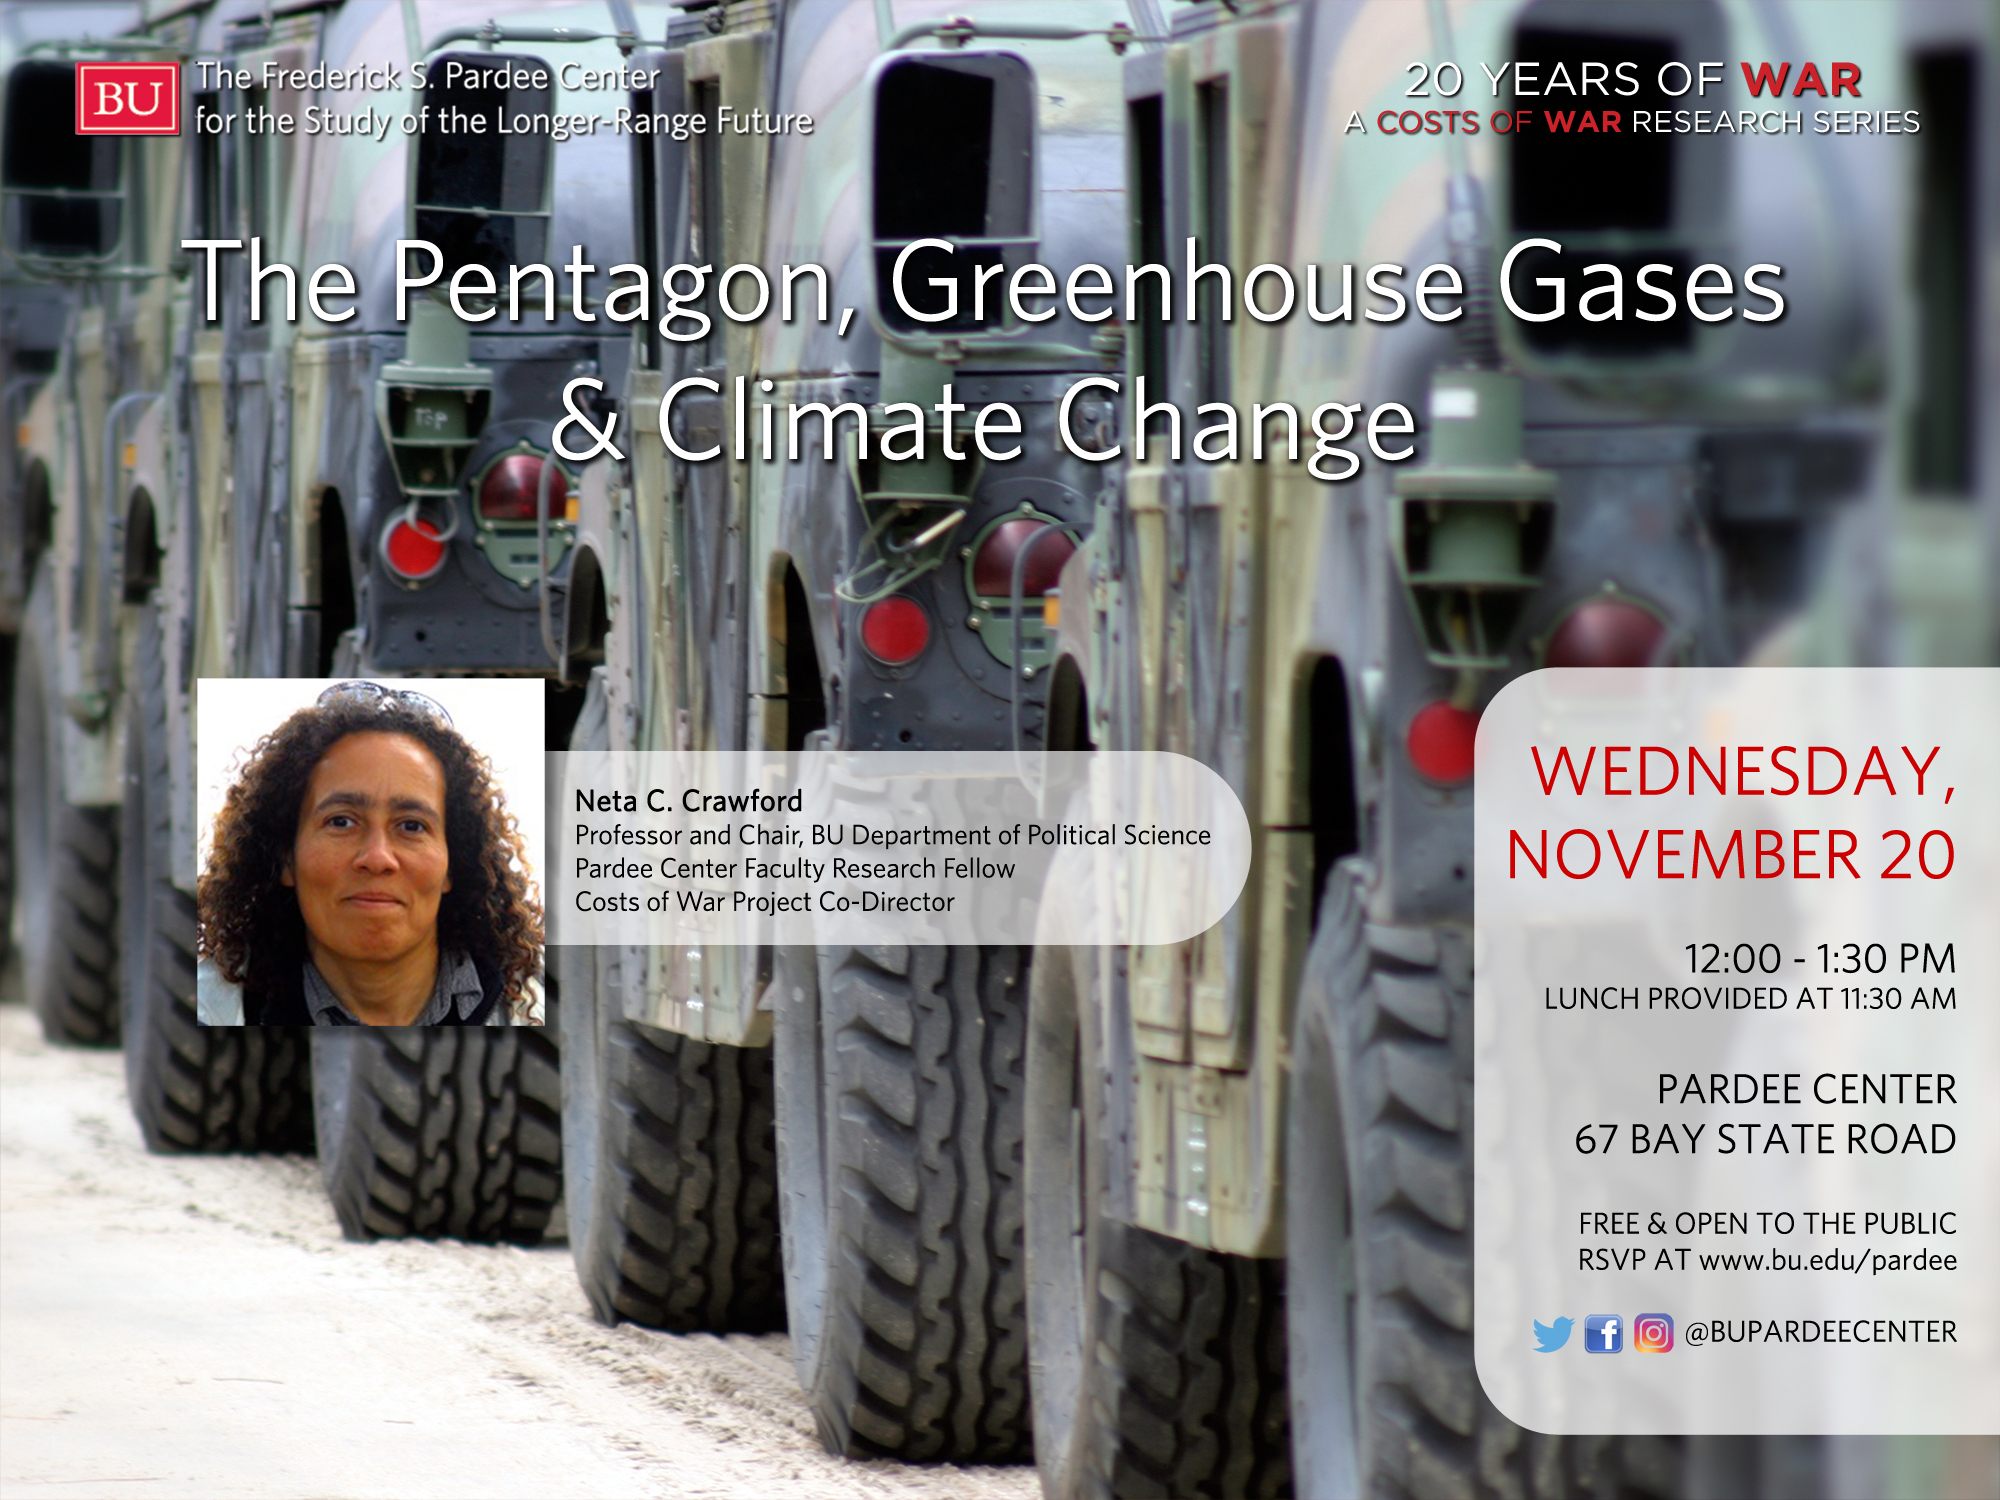 """Upcoming Seminar: """"The Pentagon, Greenhouse Gases & Climate Change"""" 